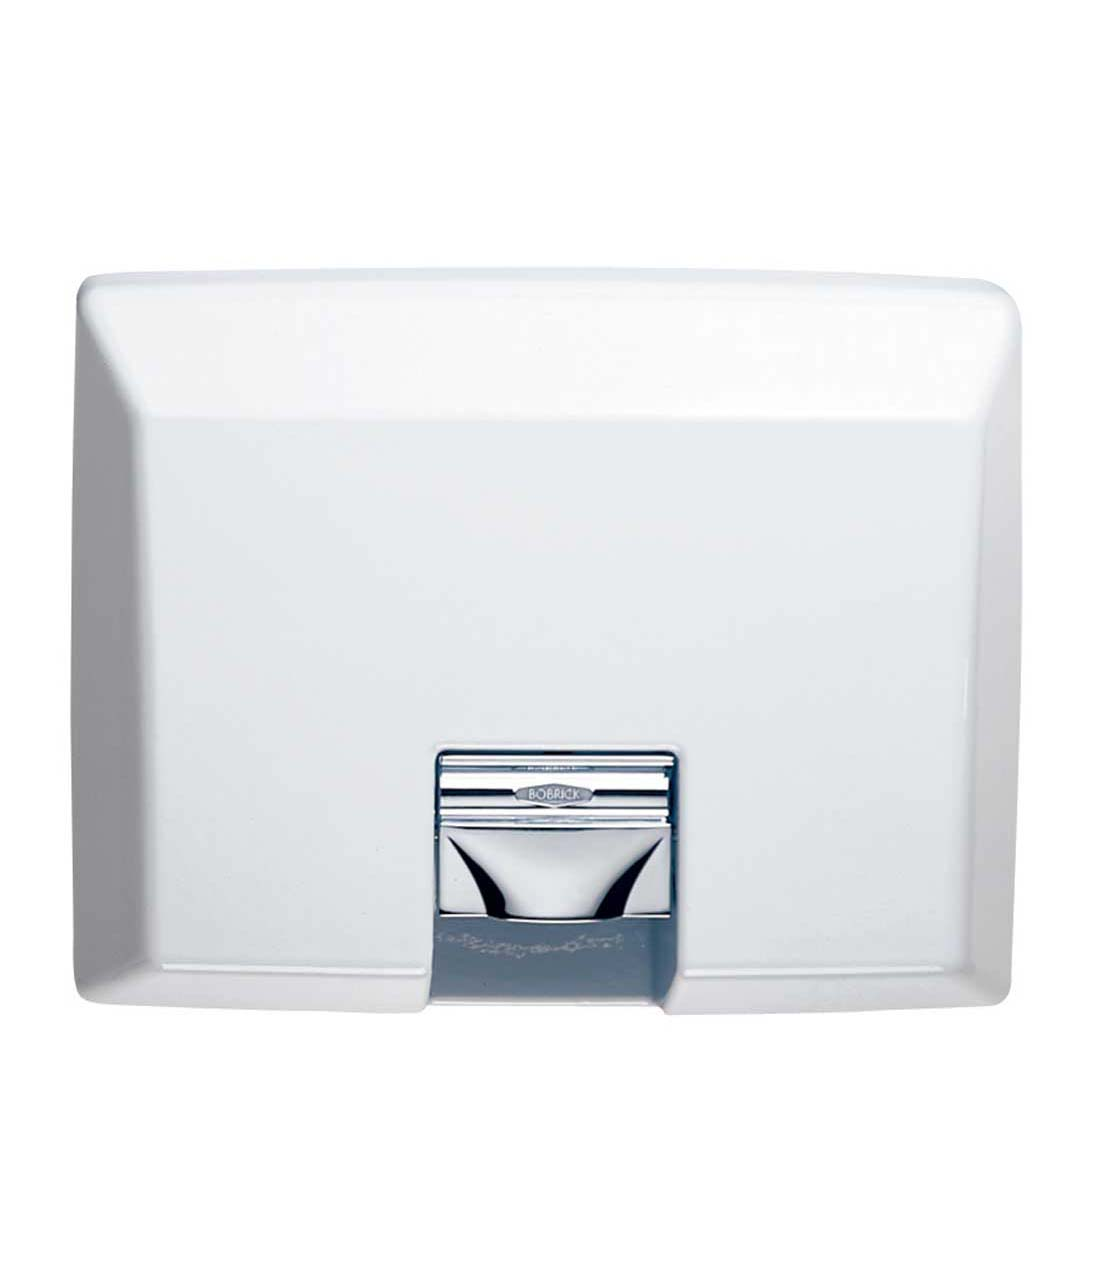 bobrick recessed aircraft automatic hand dryer part number b 750 115v warm air handhair dryers washroom inc - Air Hand Dryers